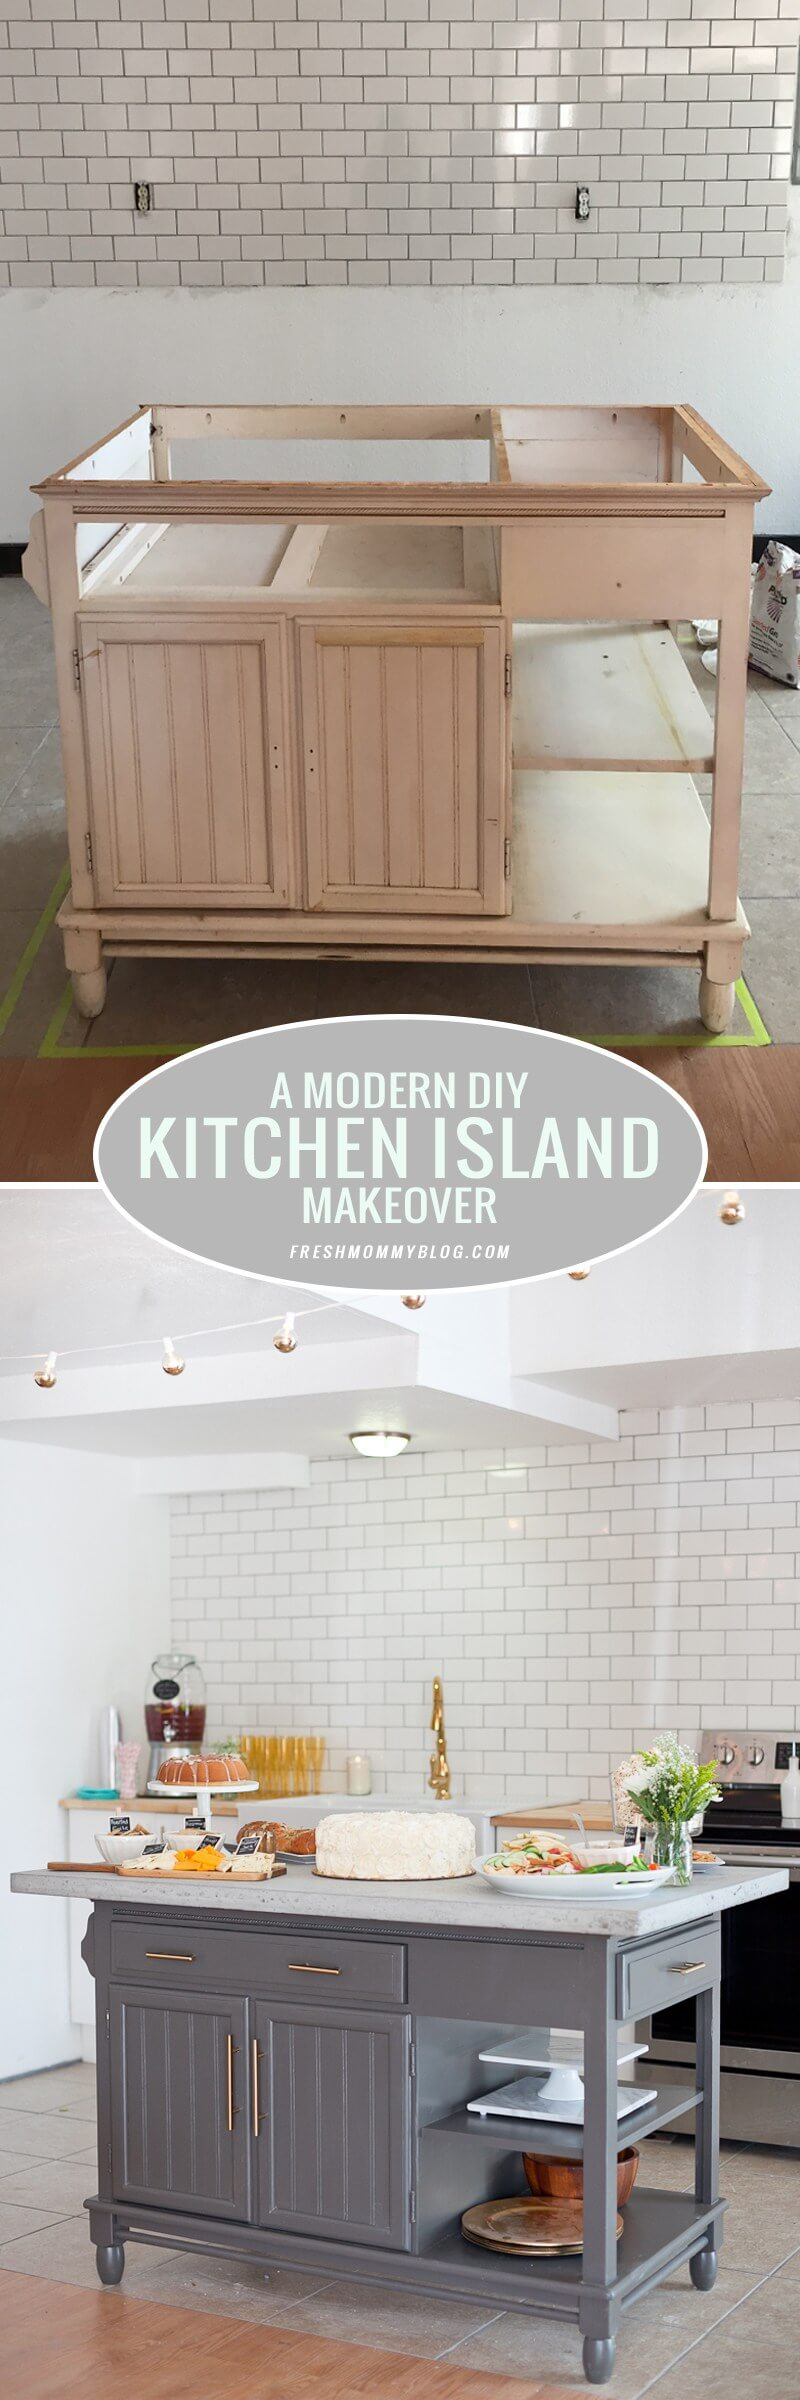 Make a DIY Island that Looks Professional